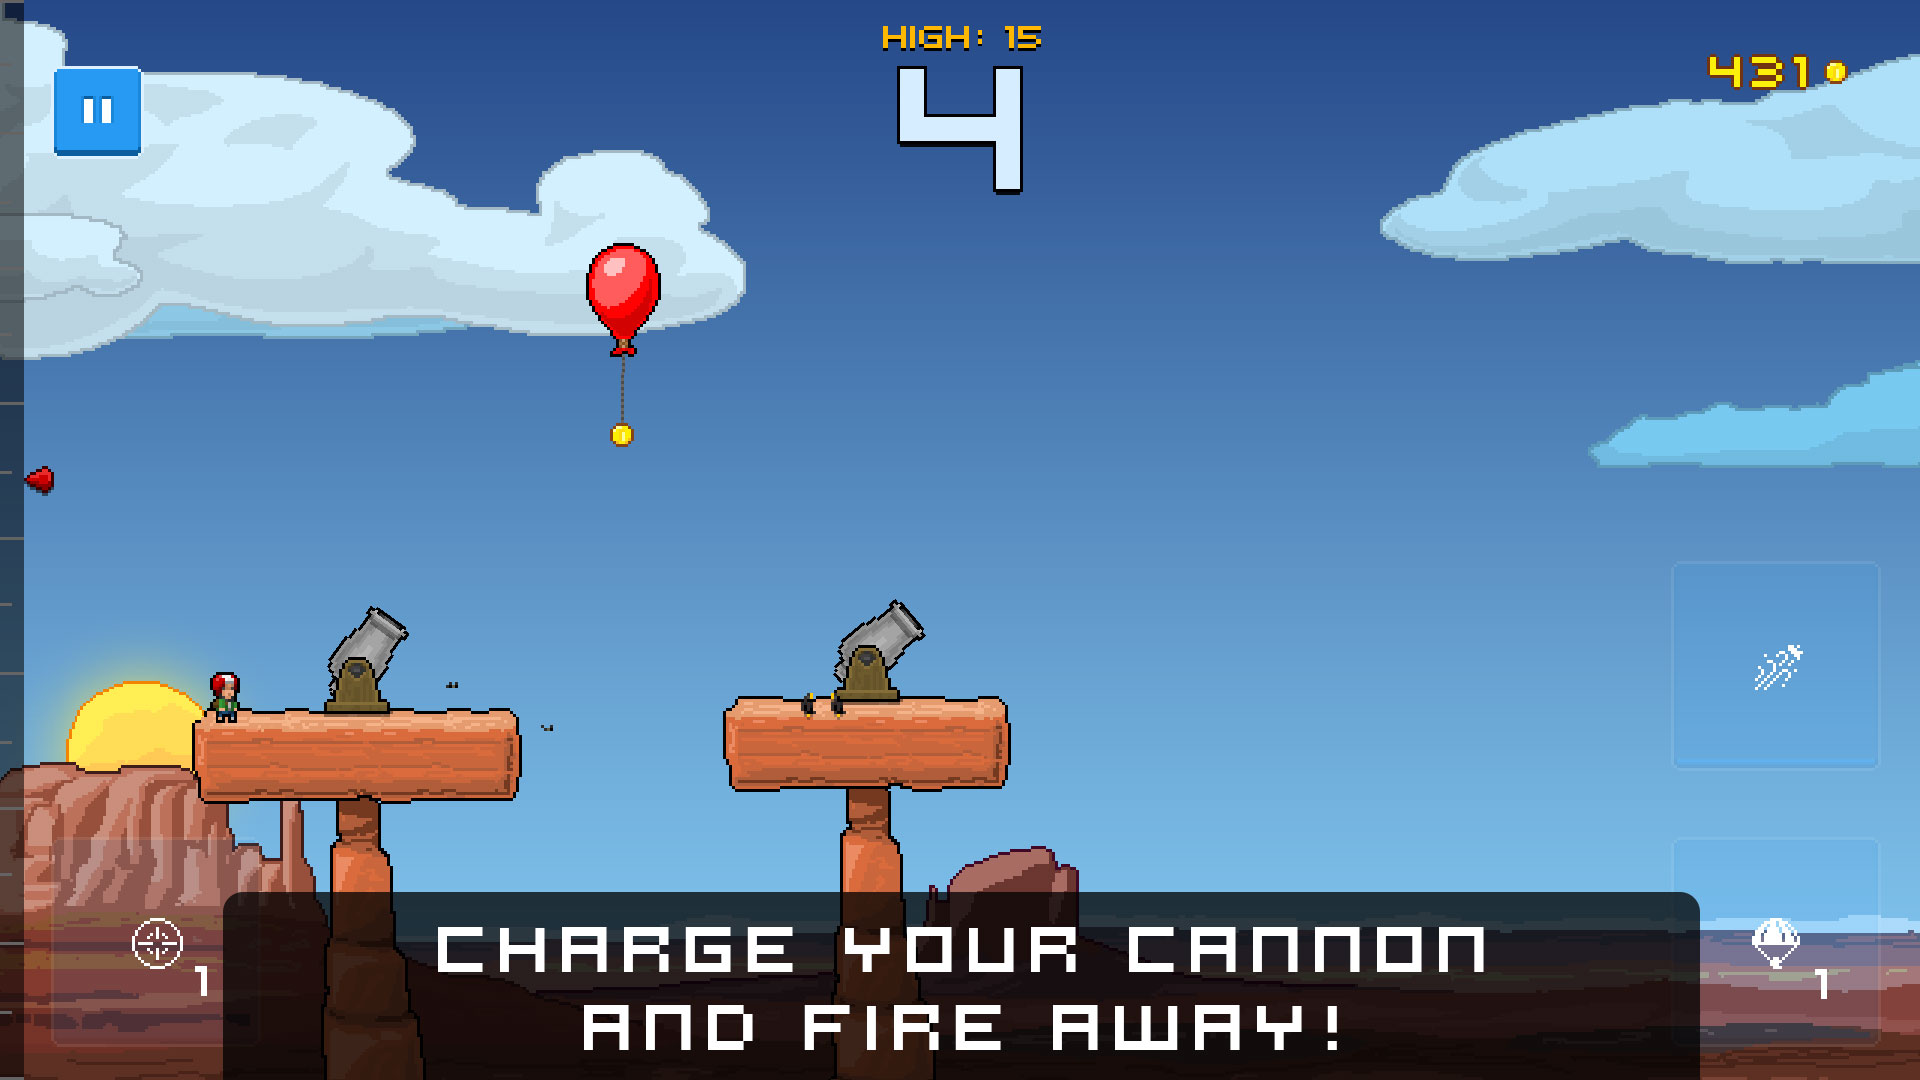 Human Cannonball - Charge your cannon